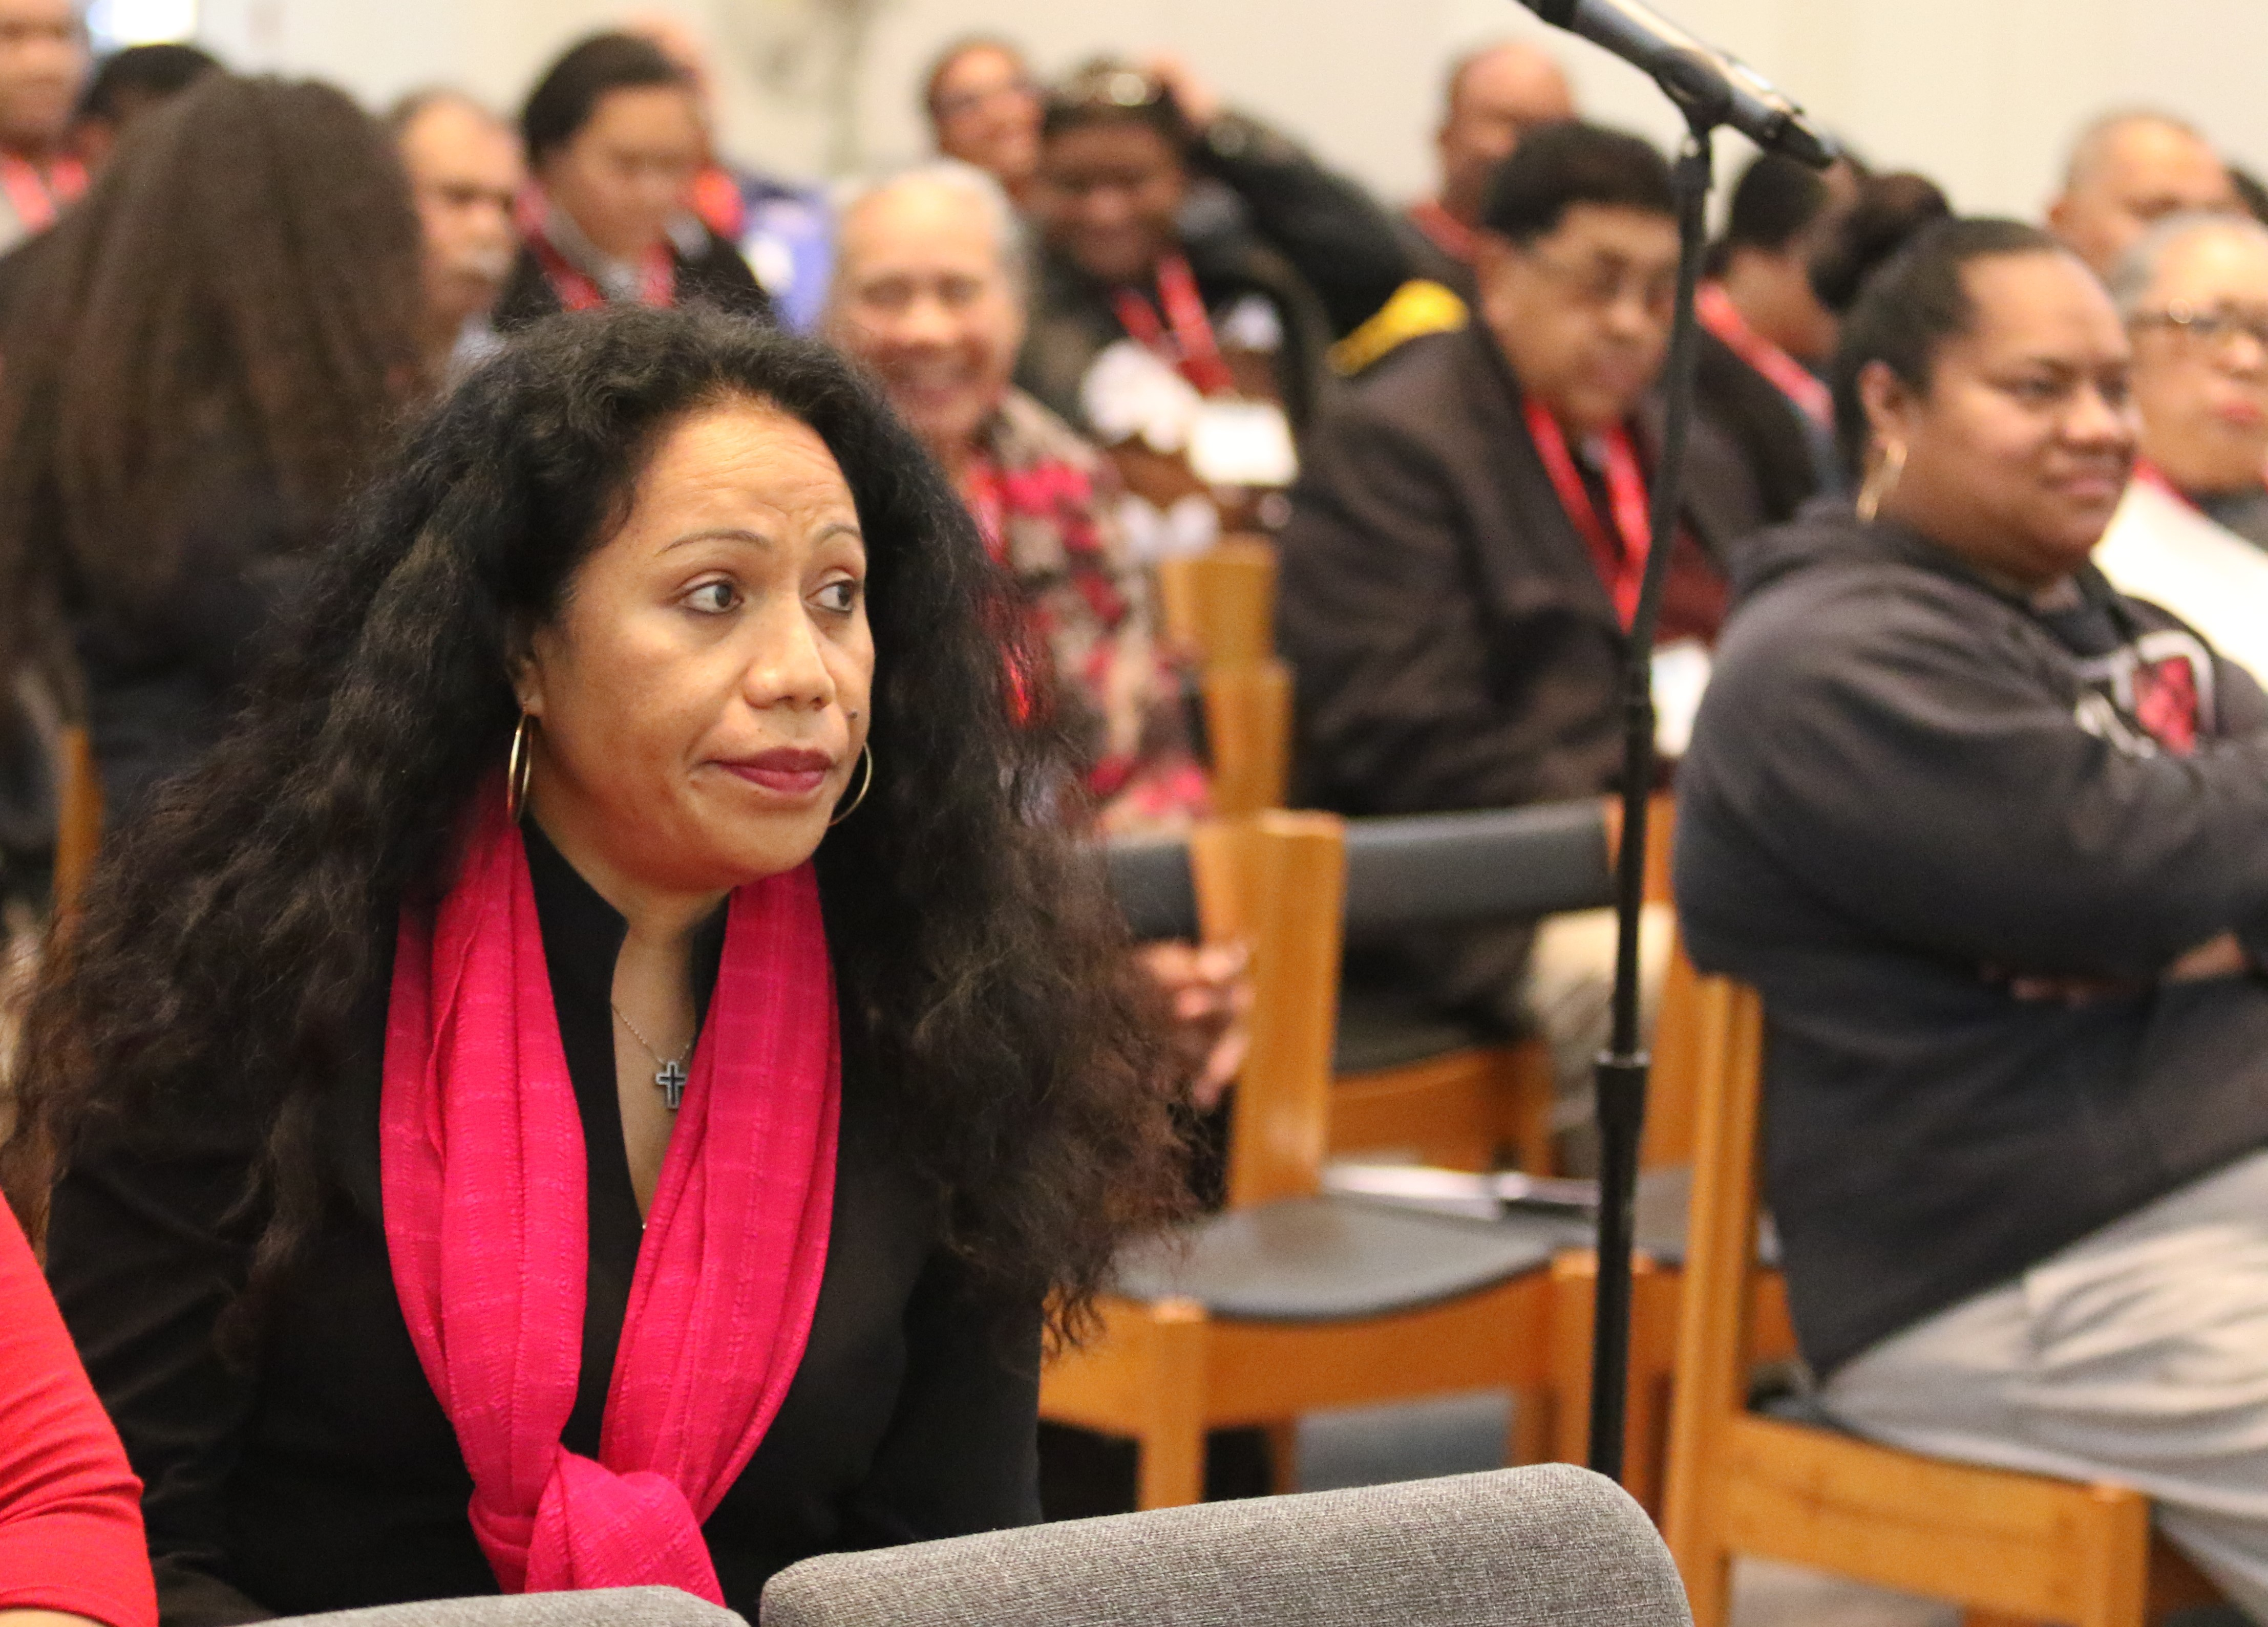 Mele Maka, a member of Moorpark United Methodist Church and a lay delegate of the Cal-Pac Conference to the General Conference pays attention to a presentation at the Pacific Islander Gathering held from December 9-11, 2018 in Claremont Seminary, CA. Photo by Thomas Kim, UMNS.